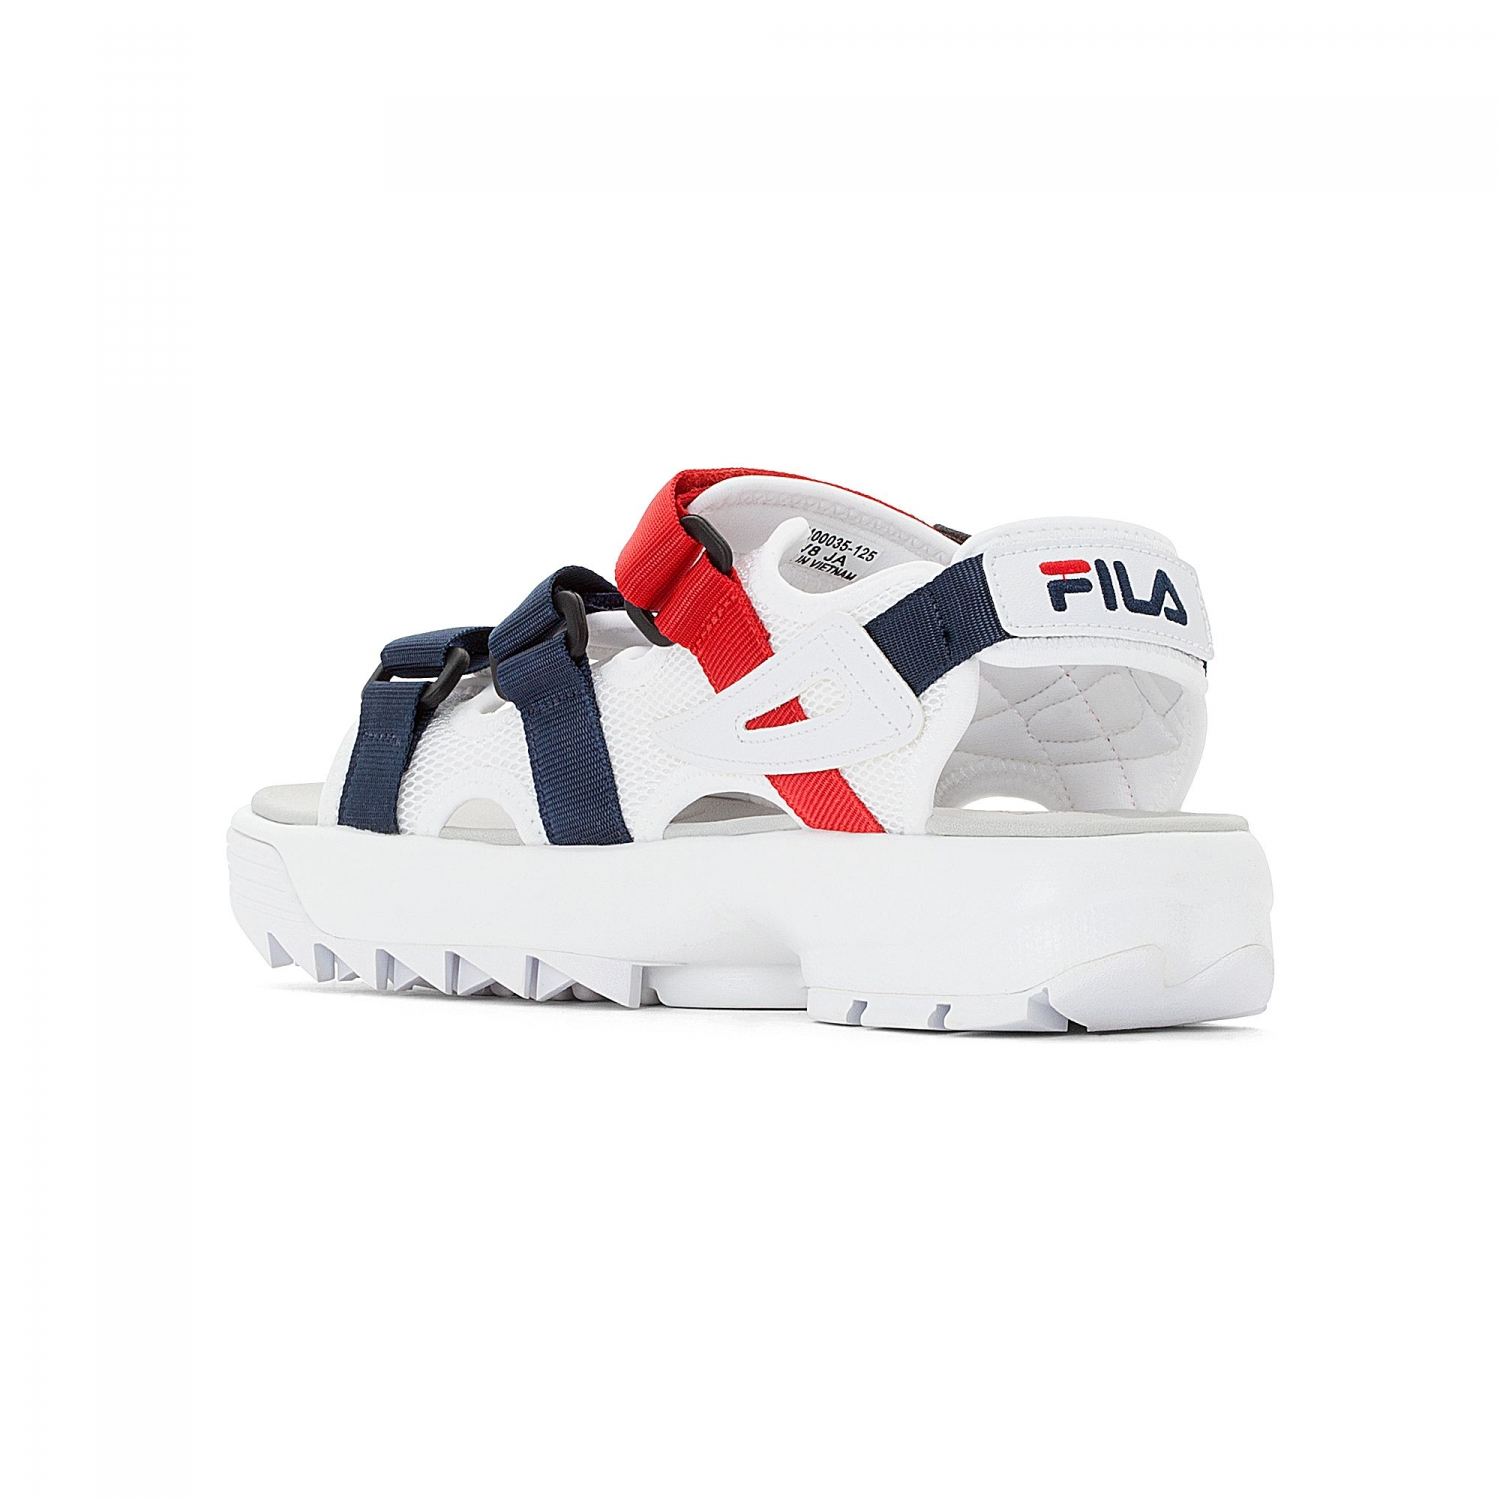 55045d8e175 Fila - Disruptor Sandal white-navy-red - 00014201669...